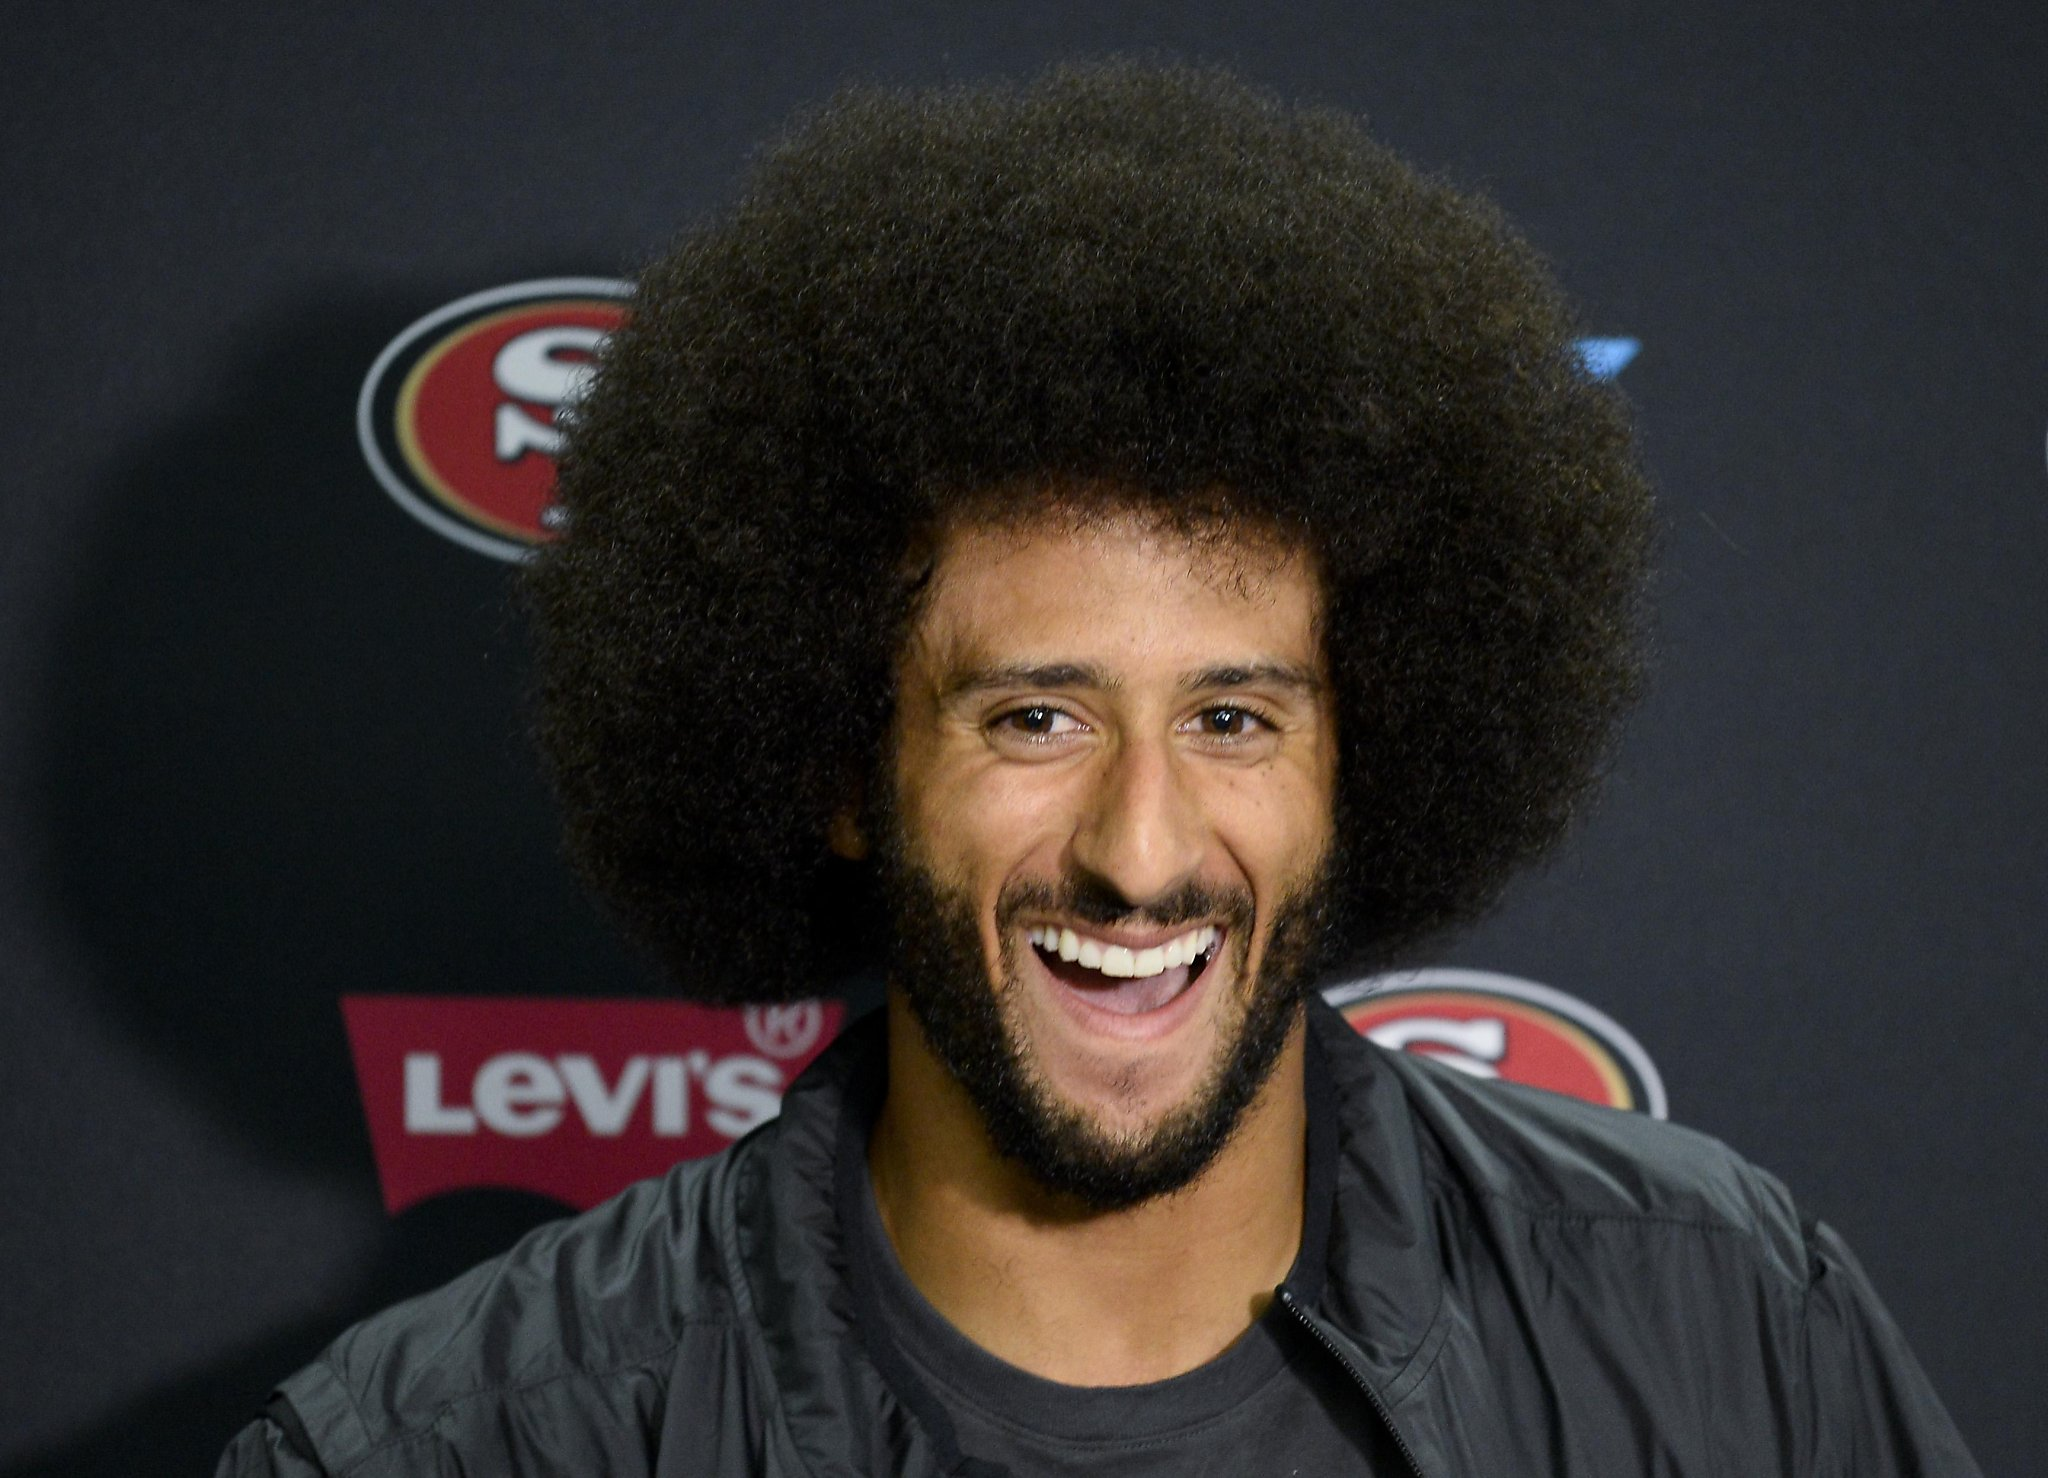 colin kaepernick's absence adds to his mixed message - san